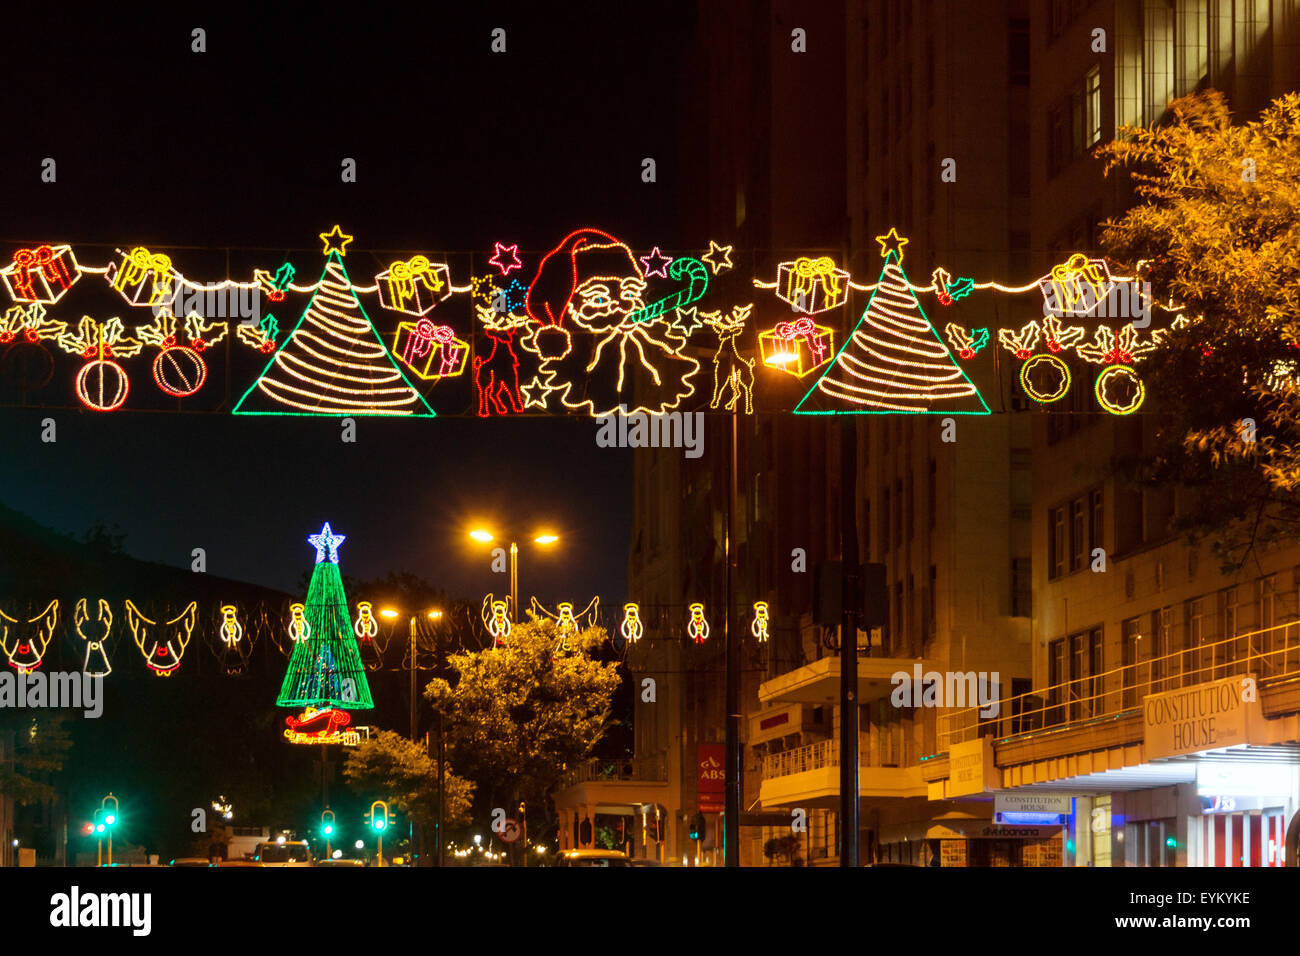 south africa capetown adderley street christmas lighting stock image - Christmas In South Africa